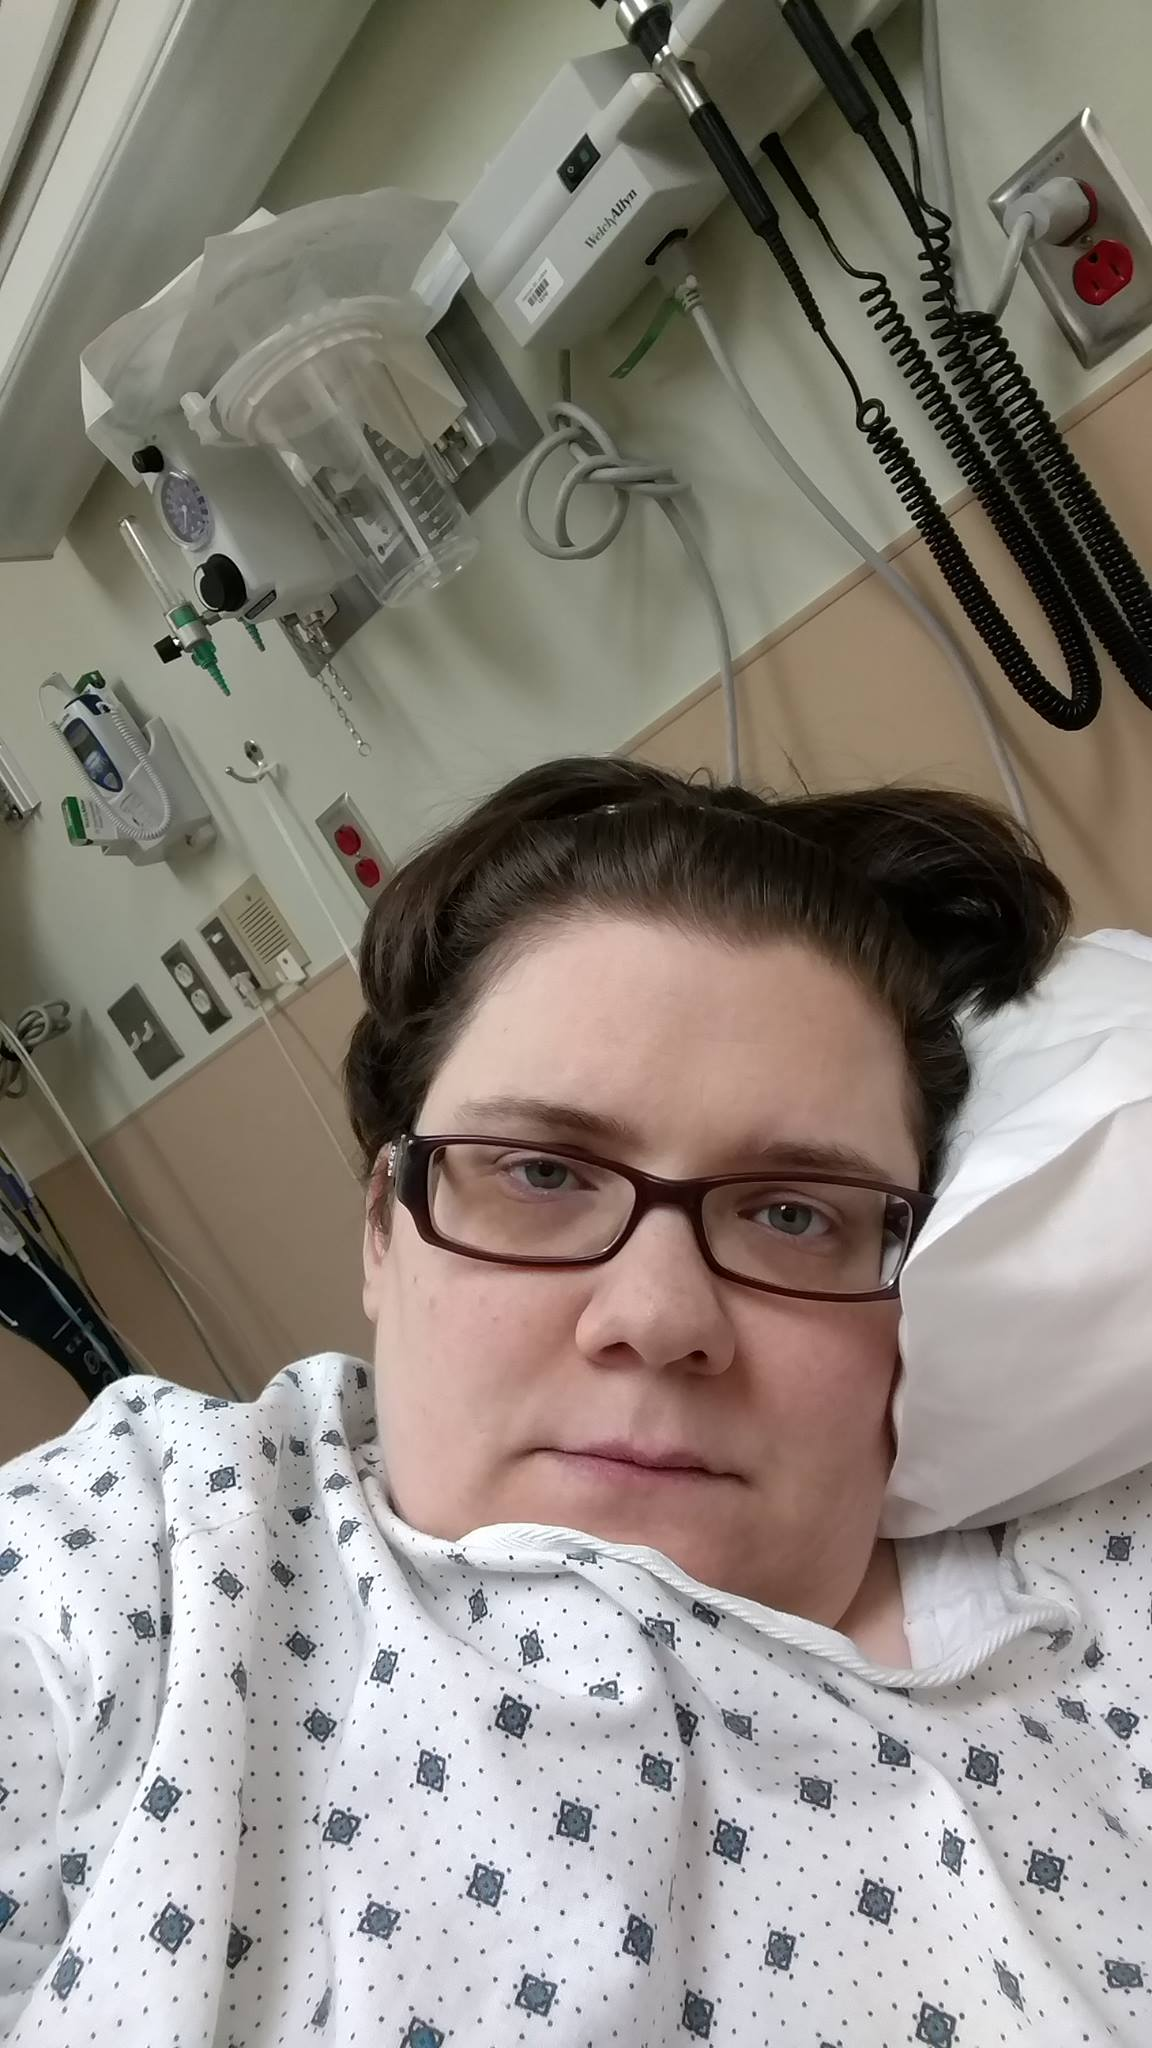 author in hospital bed